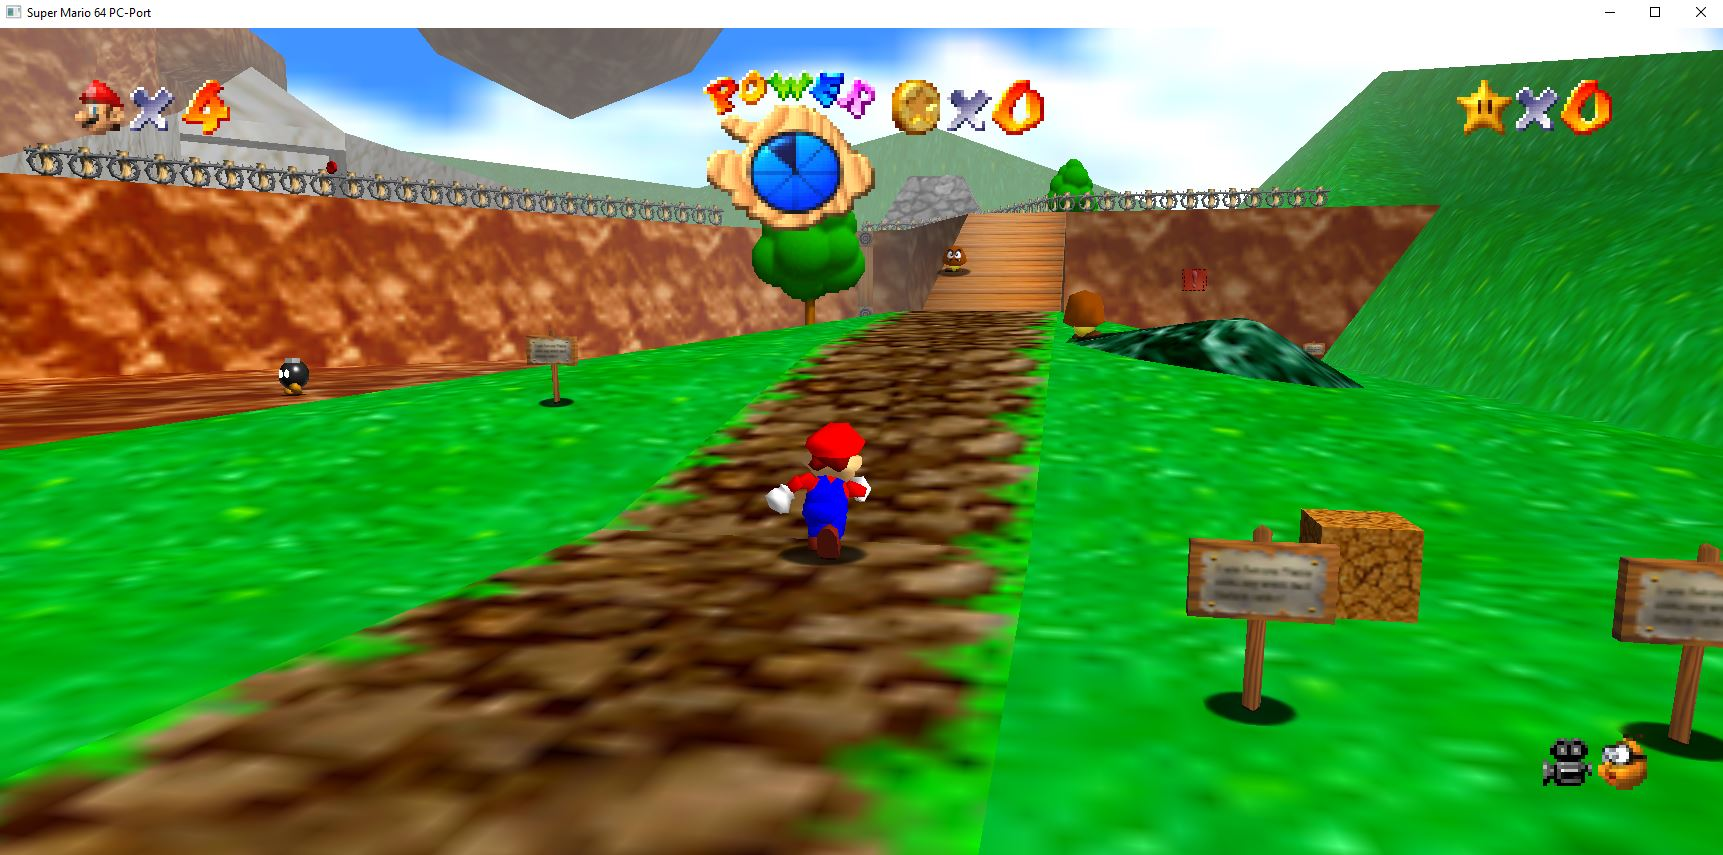 Fan Made Super Mario 64 Pc Port Supports 4k And Needs No Emulator